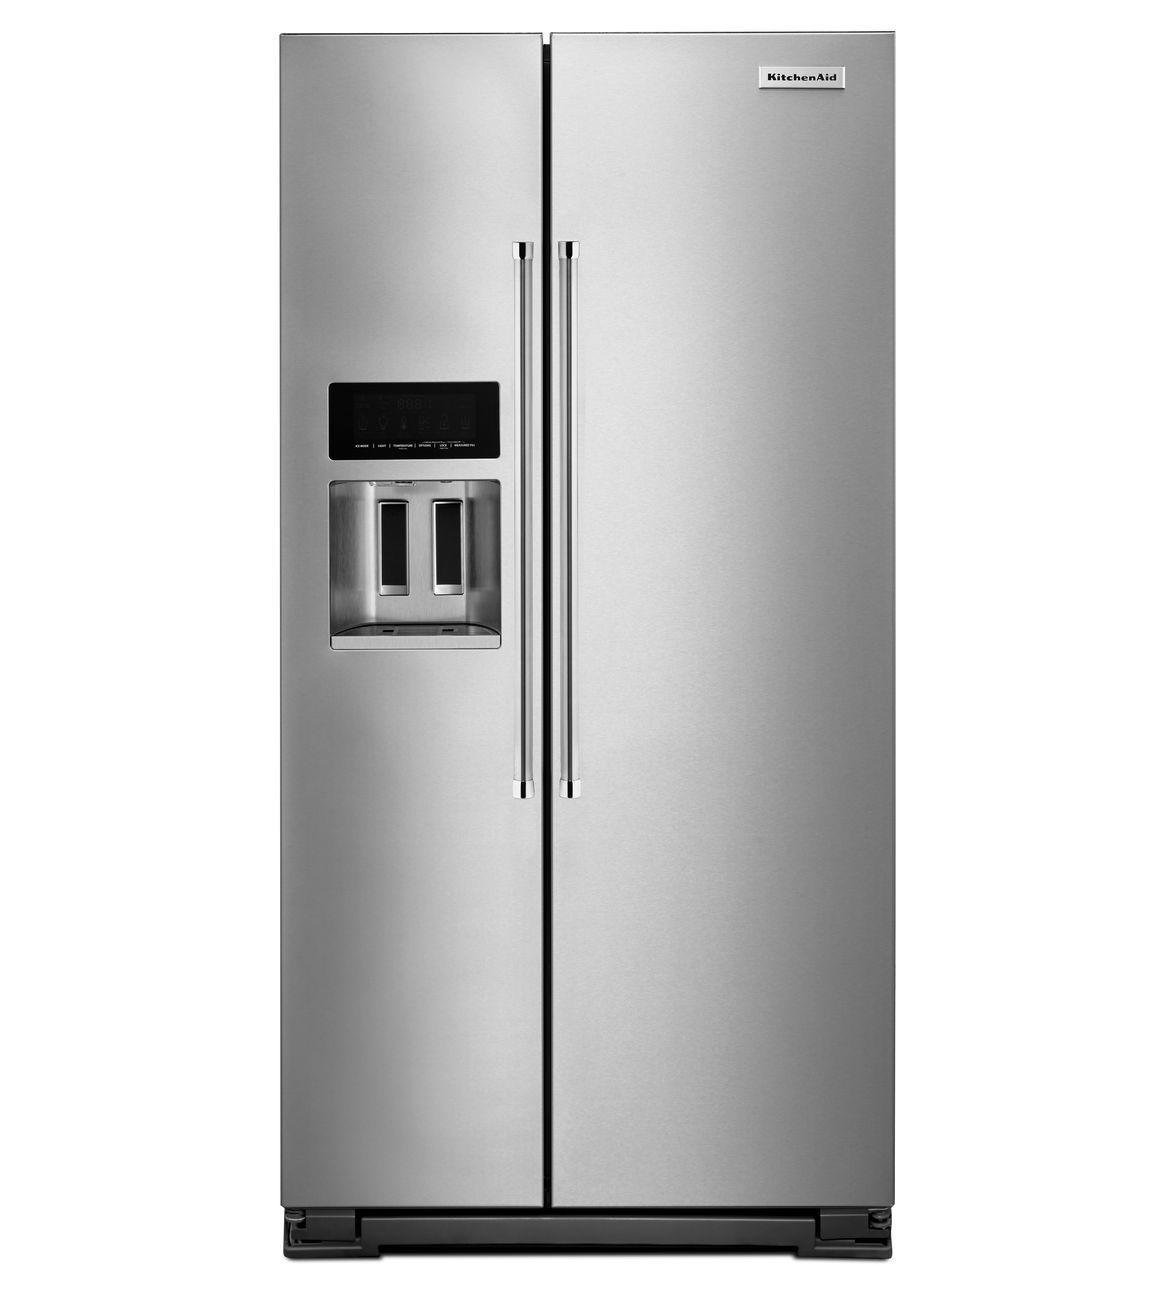 Kitchenaid Black Stainless Steel Side By Side Refrigerator: Side By Side Refrigerators